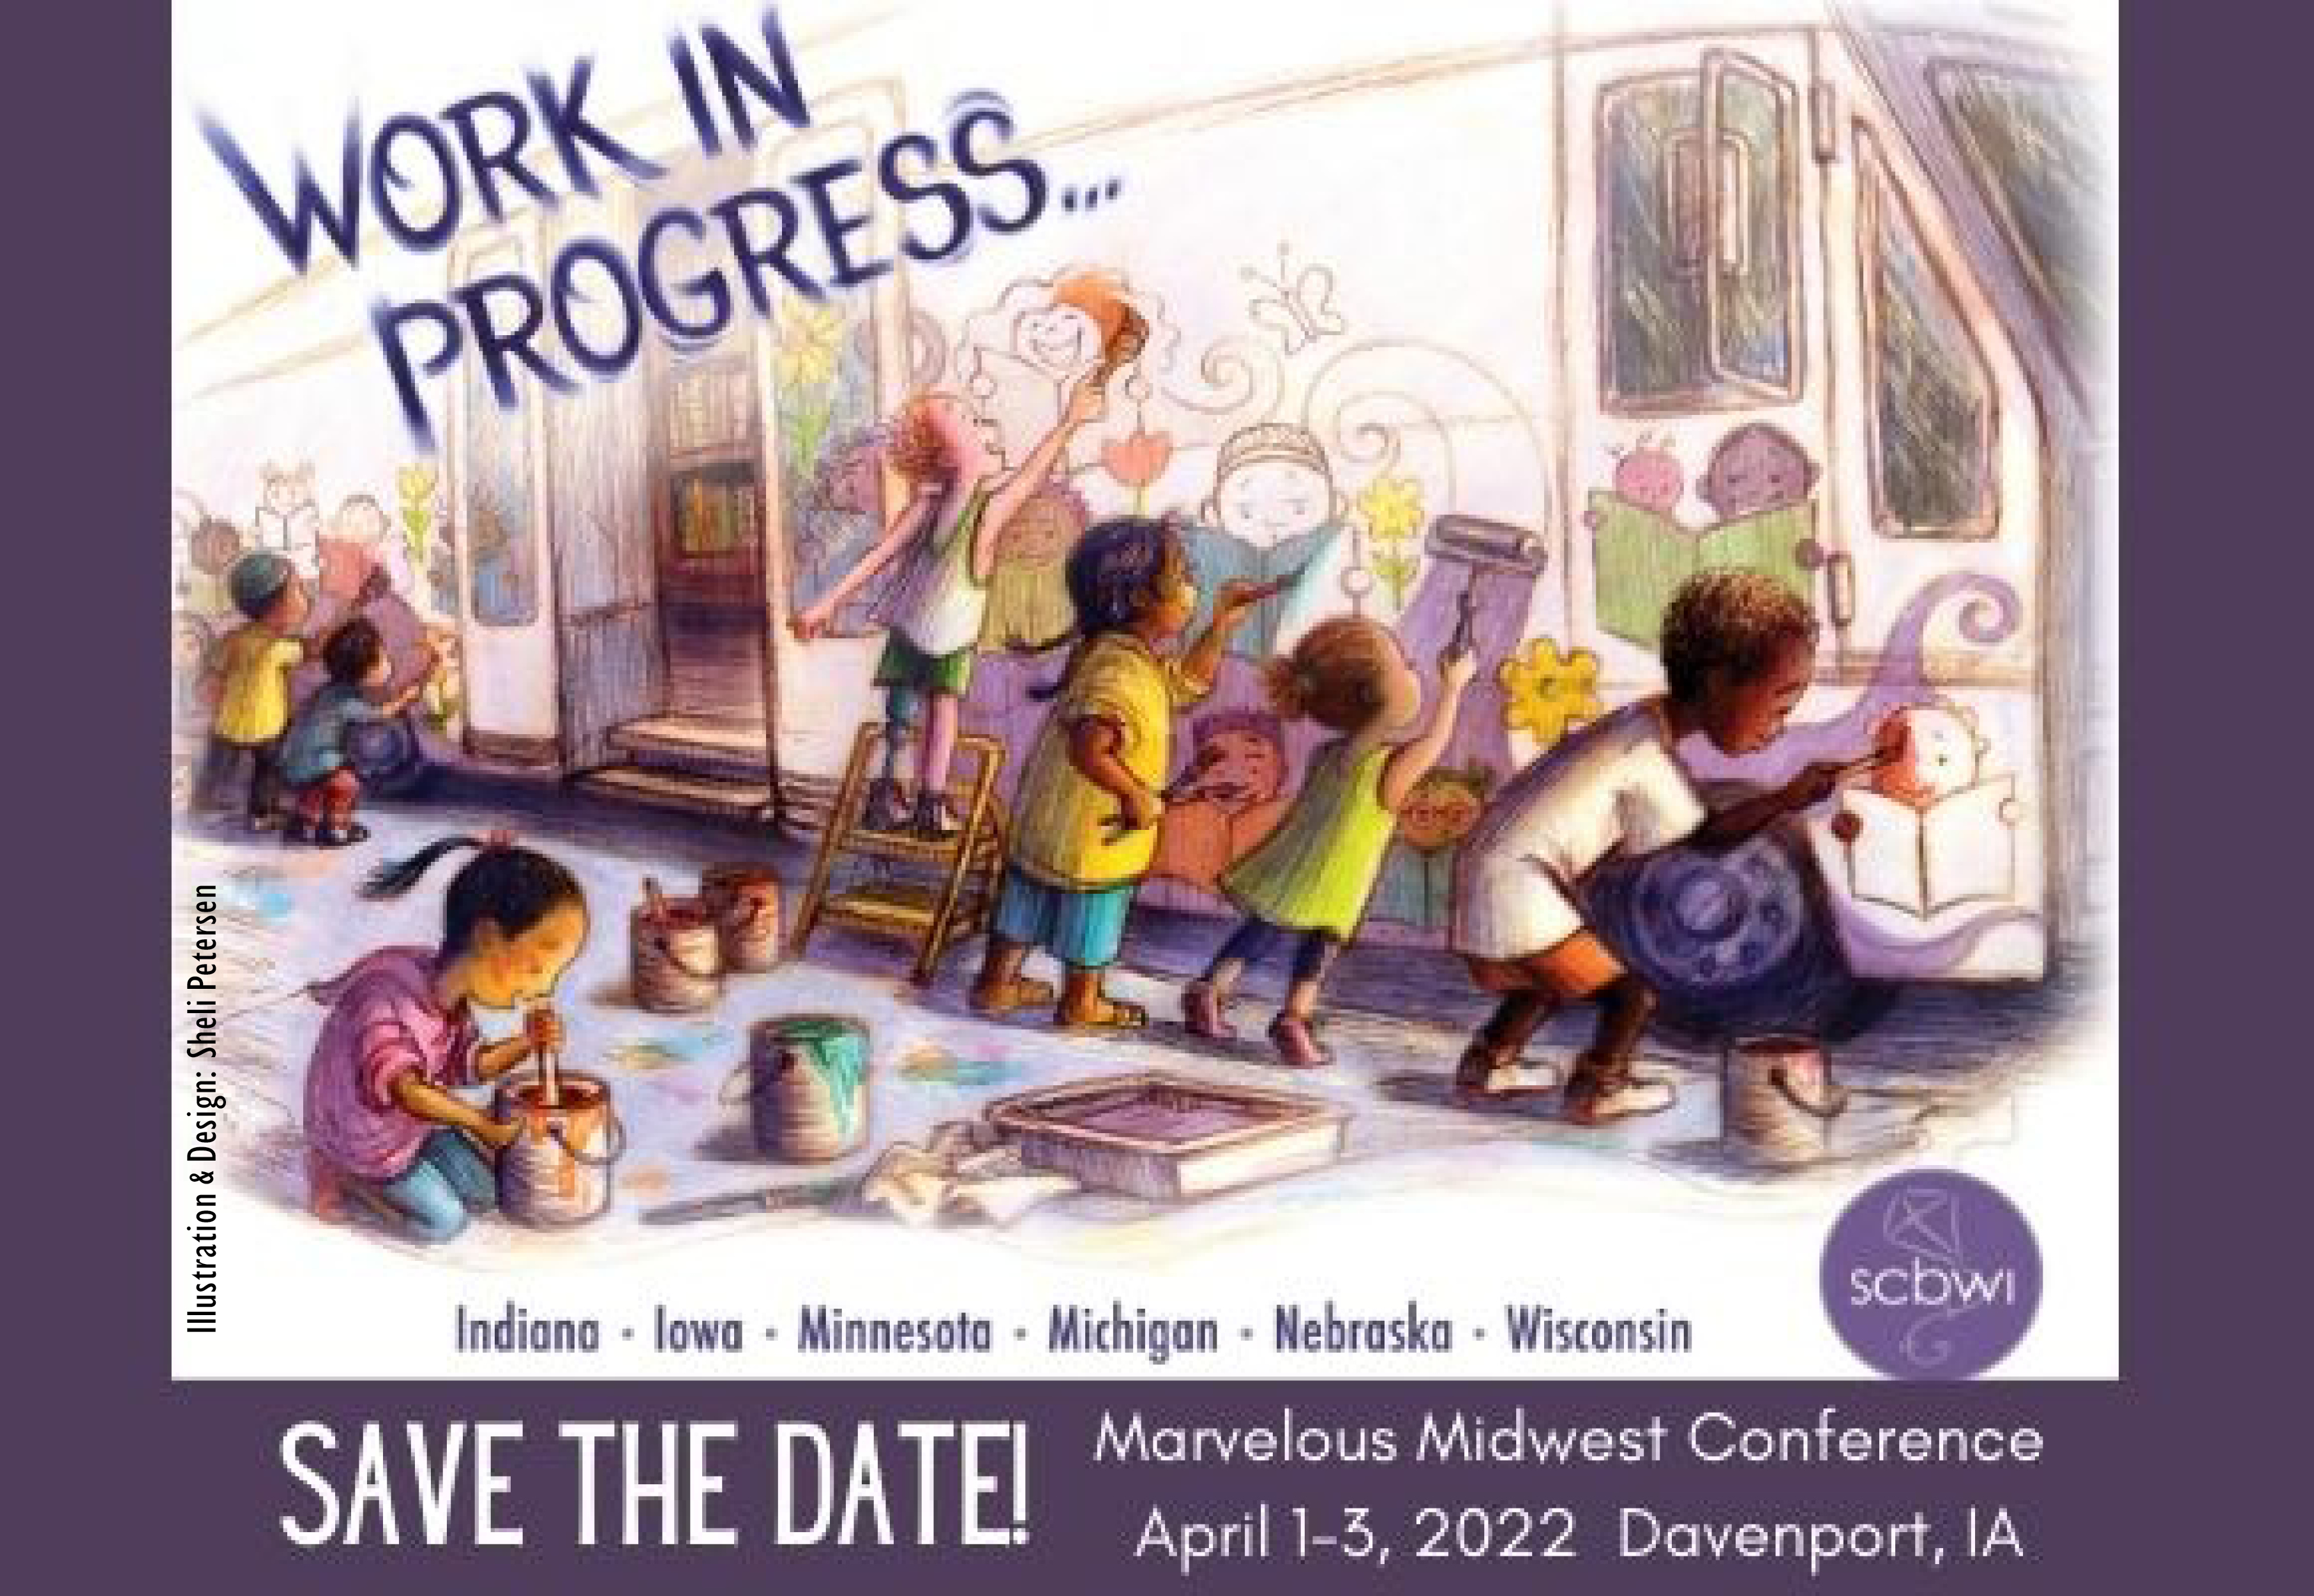 Save the Date for the 2022 Marvelous Midwest SCBWI Conference! This multi-region conference is designed to give you a large SCBWI NYC or LA conference experience closer to home.  Featuring over 35 faculty members sharing content for writers and illustrators that will move your Works In Progress -- and your career -- forward. Make industry connections. Get a portfolio review or critique. Gain access to acquiring editors, agents, and art directors. Find your people and make lasting relationships.  Start your planning now to join in! Much more information to come. Stay tuned.